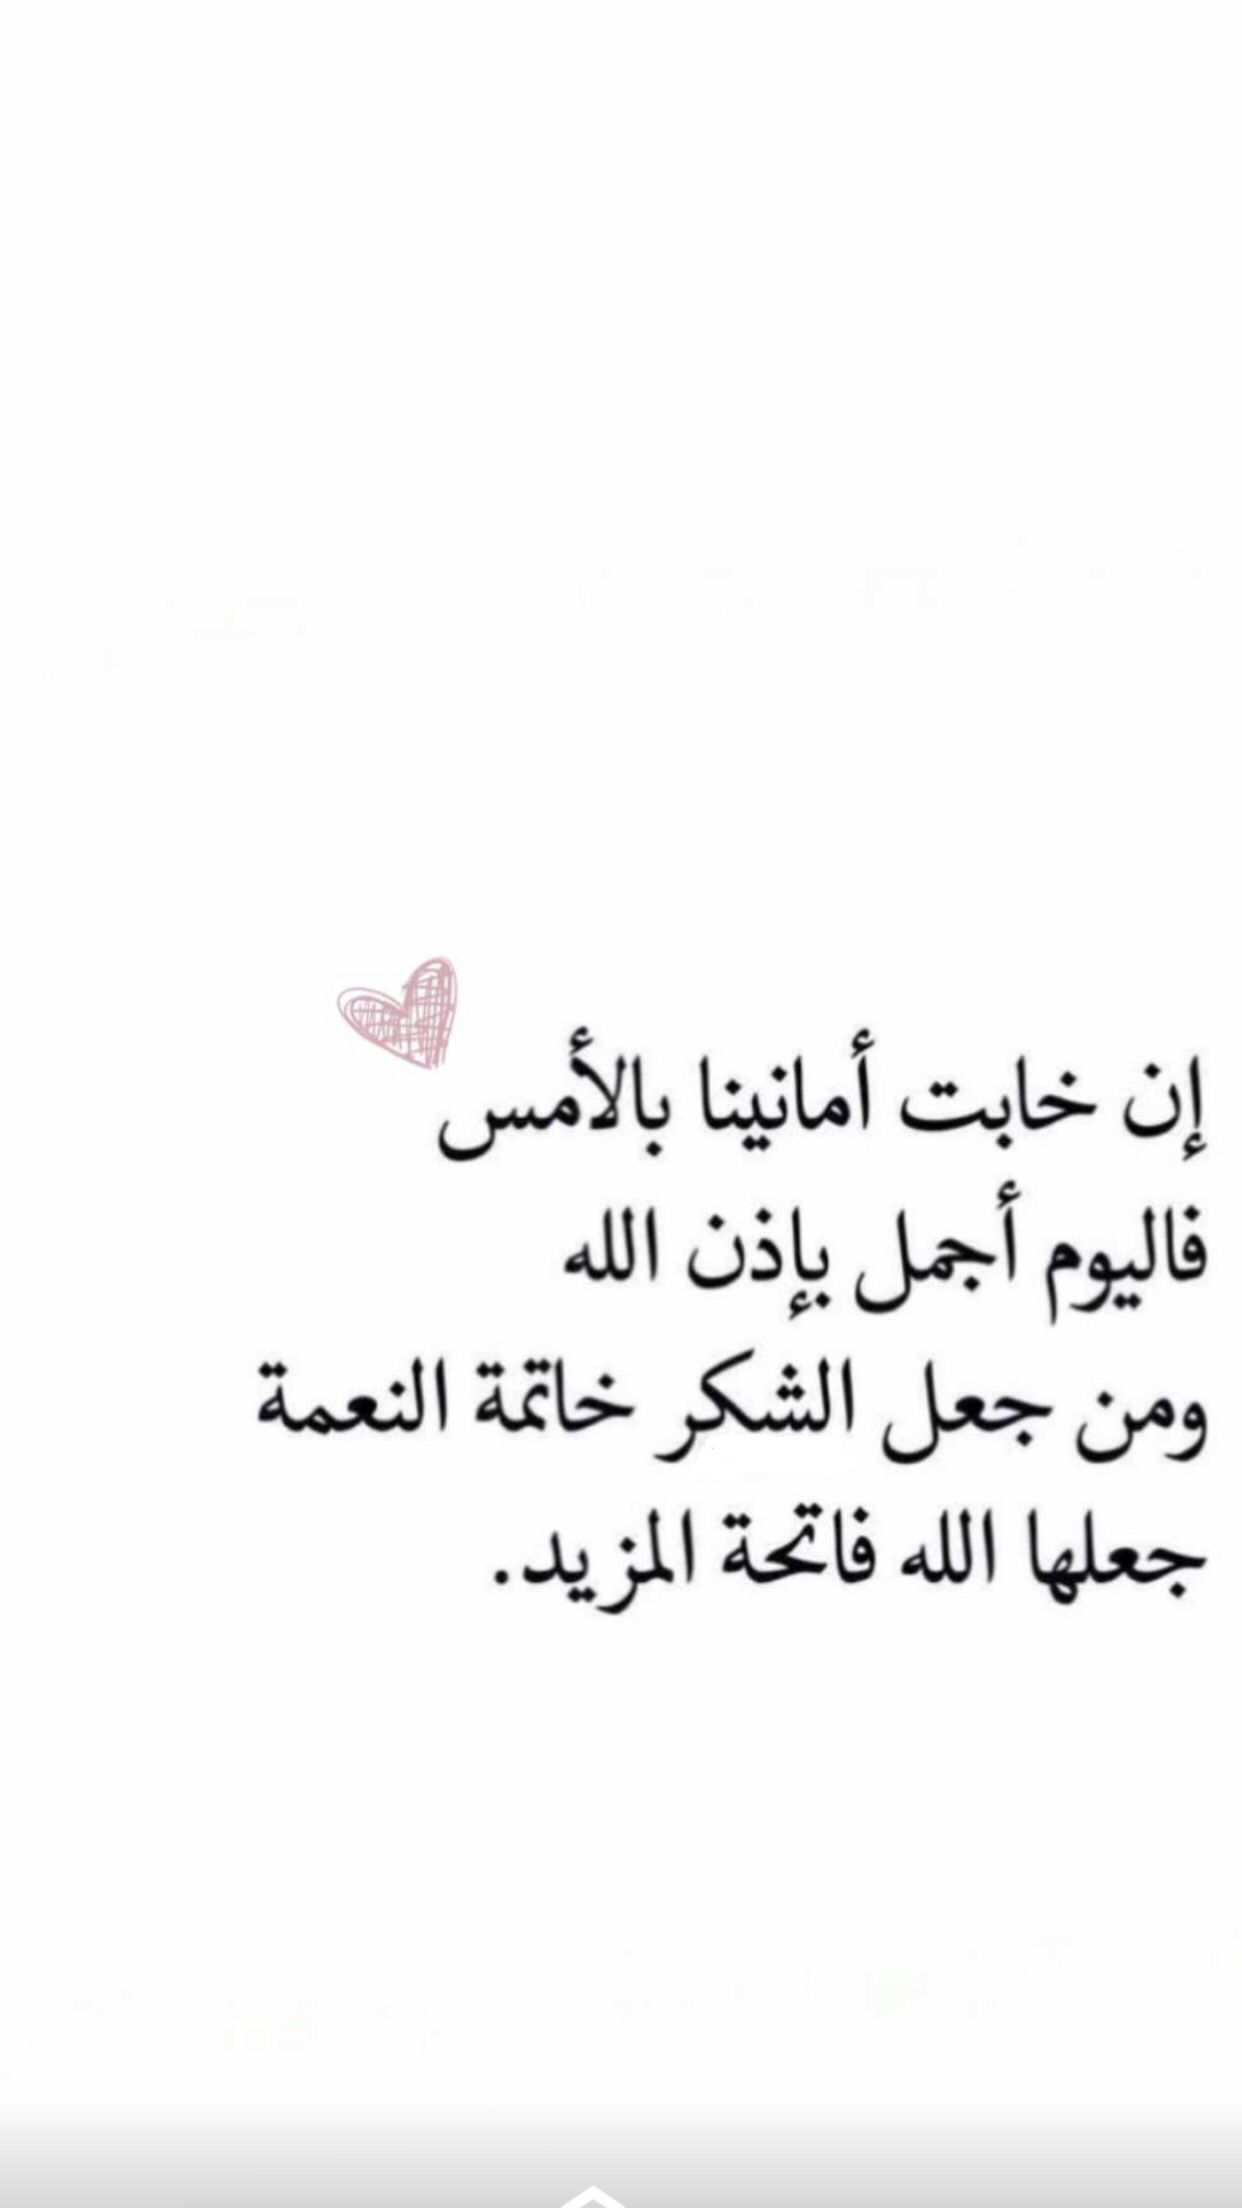 Pin By Dal On Quotes Wisdom Quotes Islamic Quotes Cute Love Quotes